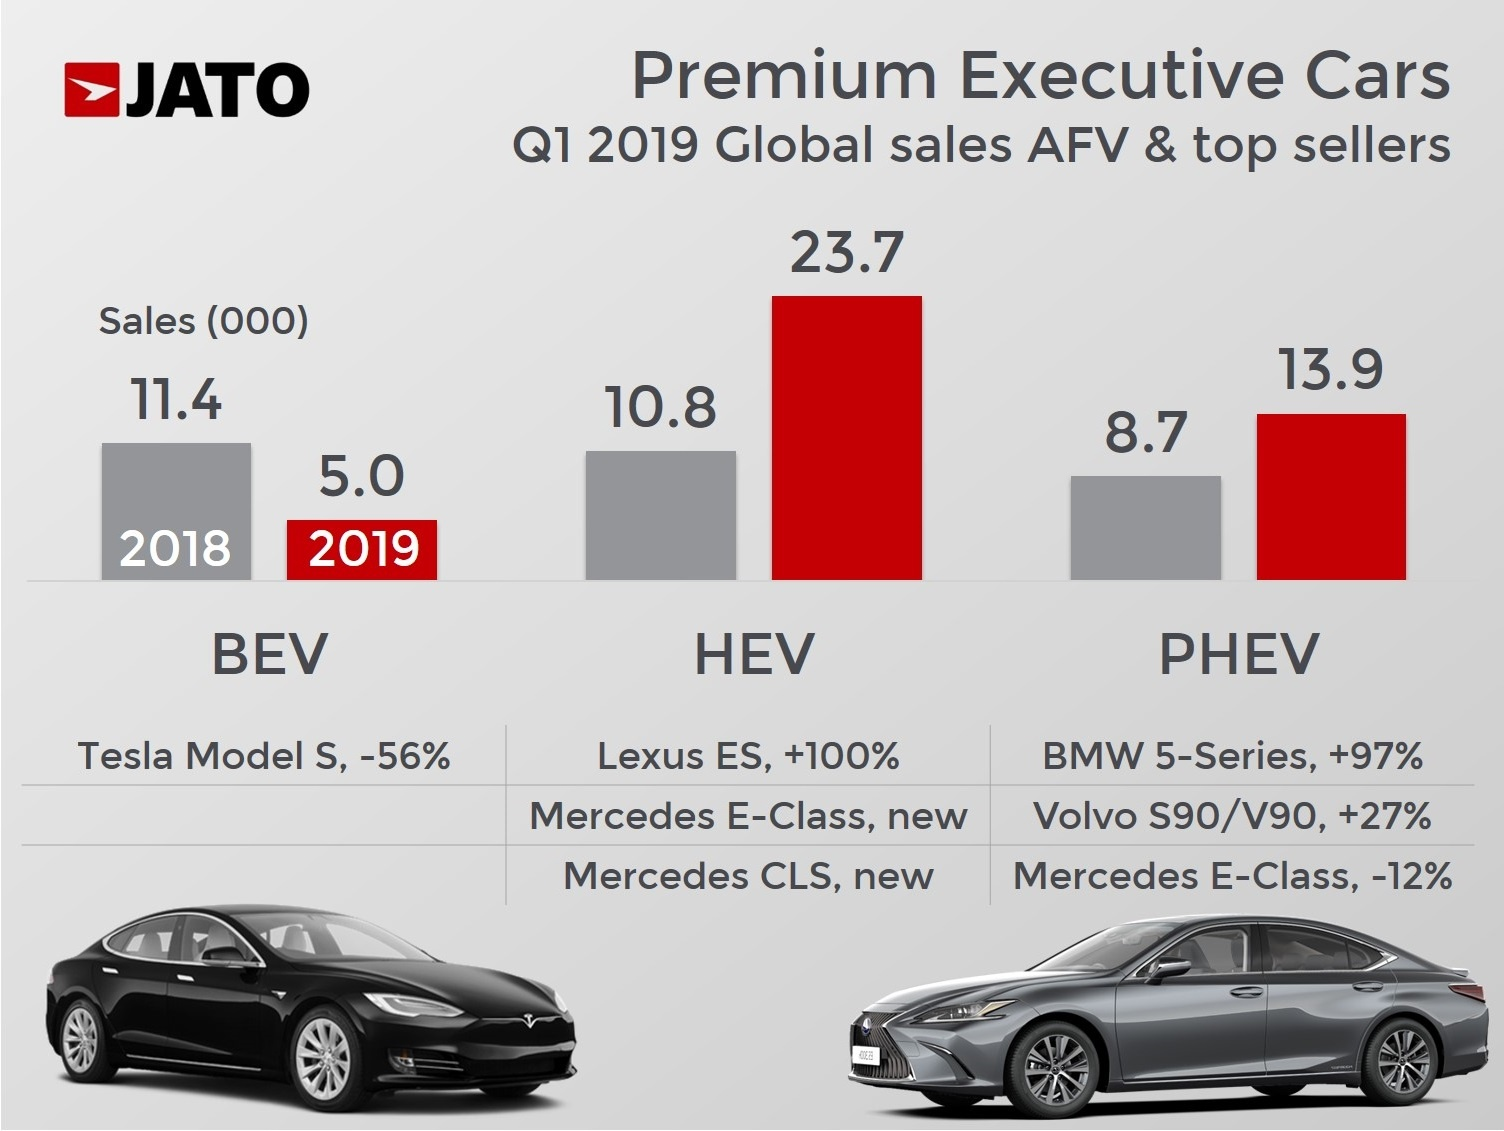 Global Demand For Premium Executive Cars Fell By 10 In Q1 2019 Jato